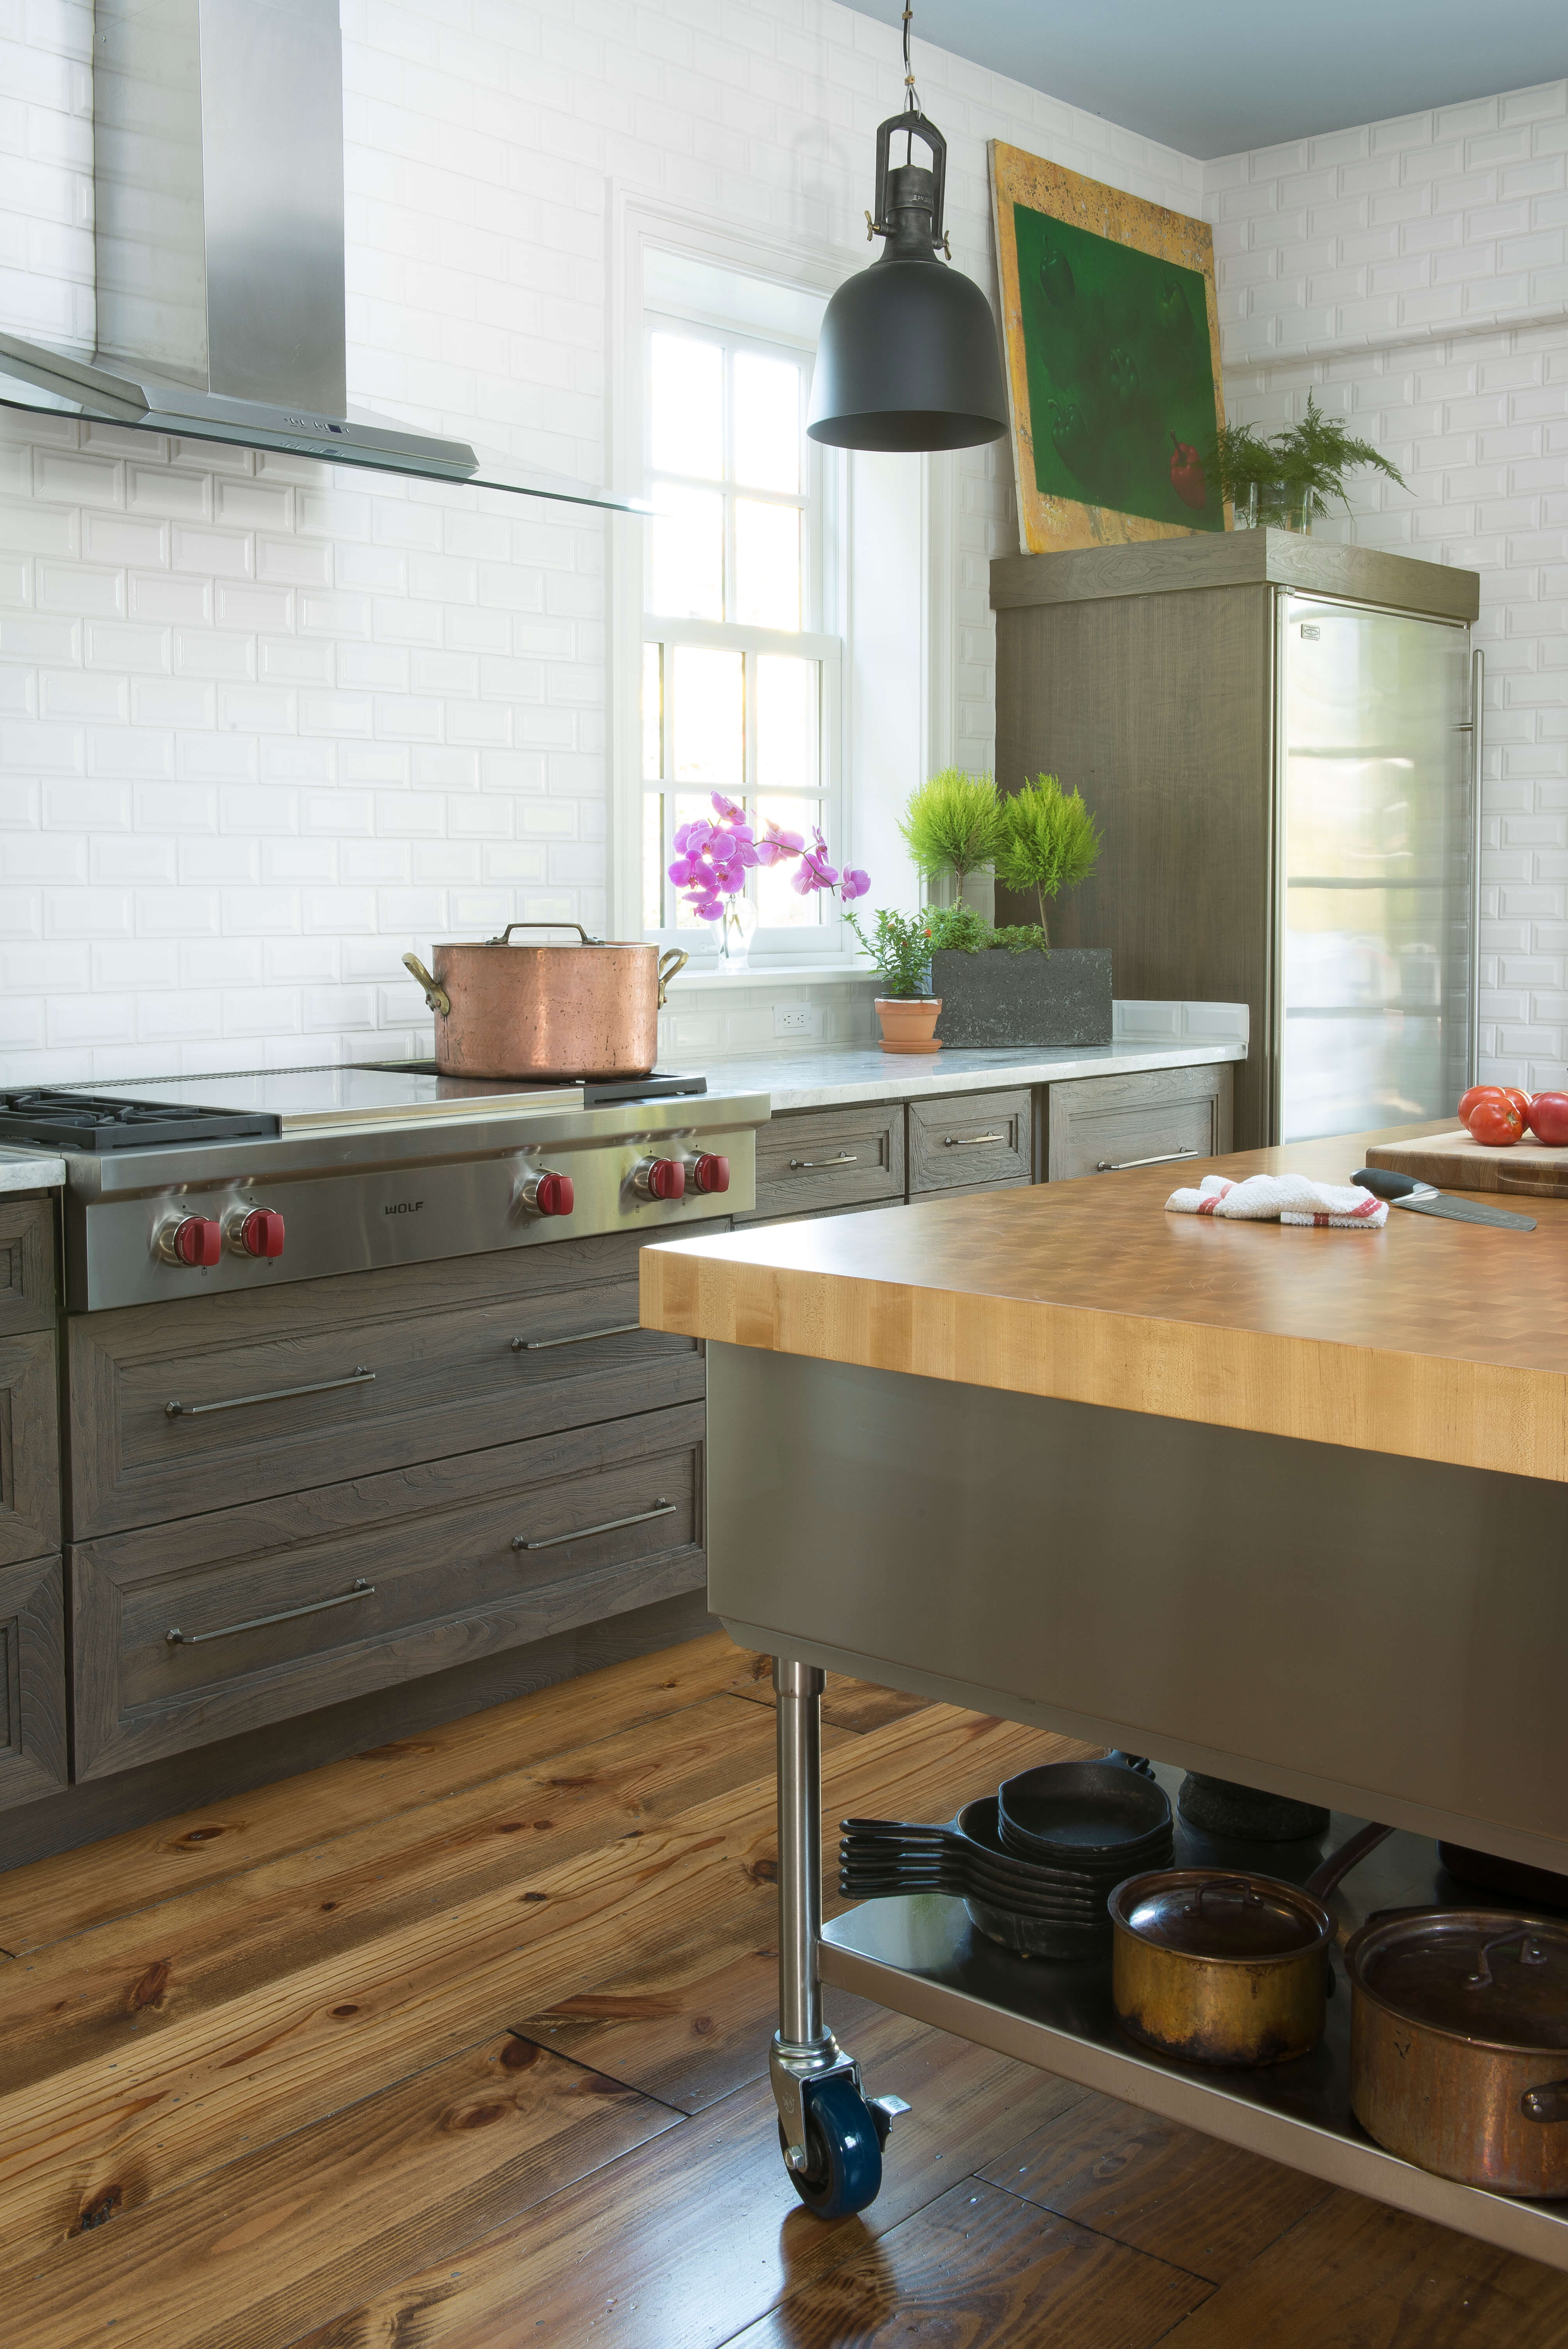 White subway tiles are used in both kitchens to tie the 2 designs together.